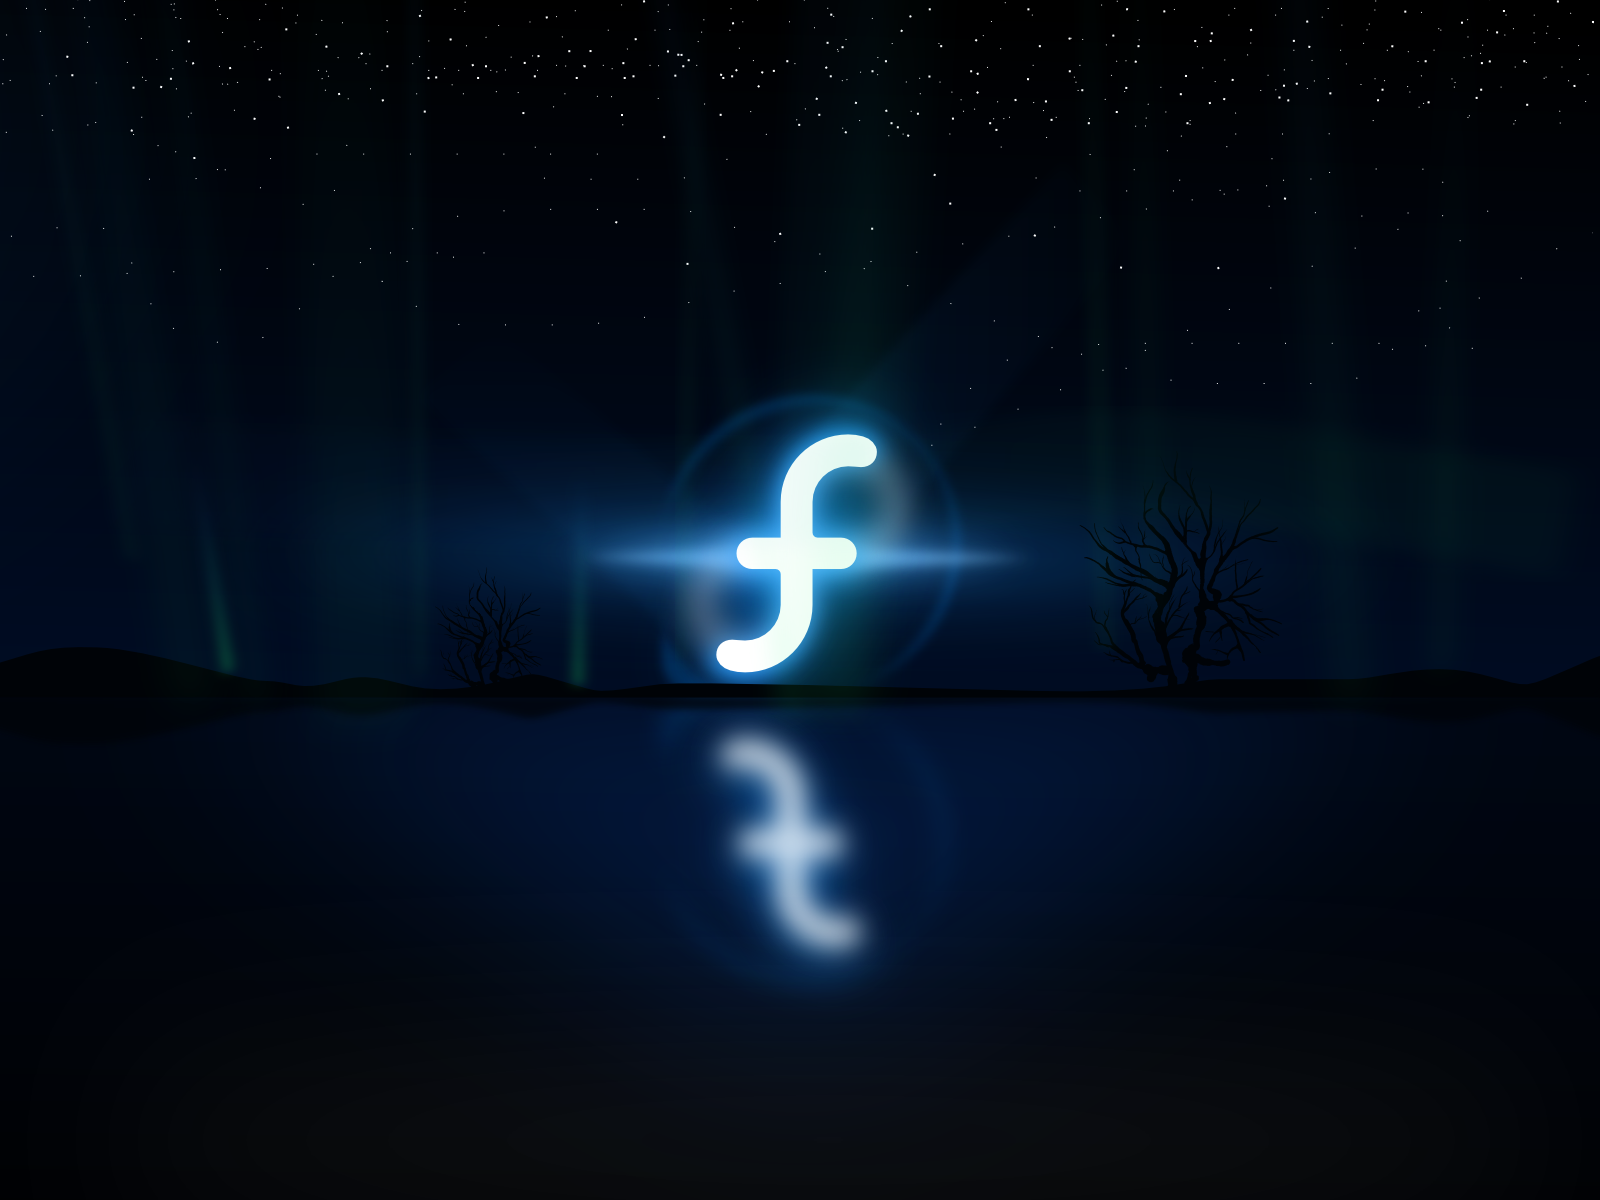 Fedora Wallpapers Pack Download V.94 - BsnSCB